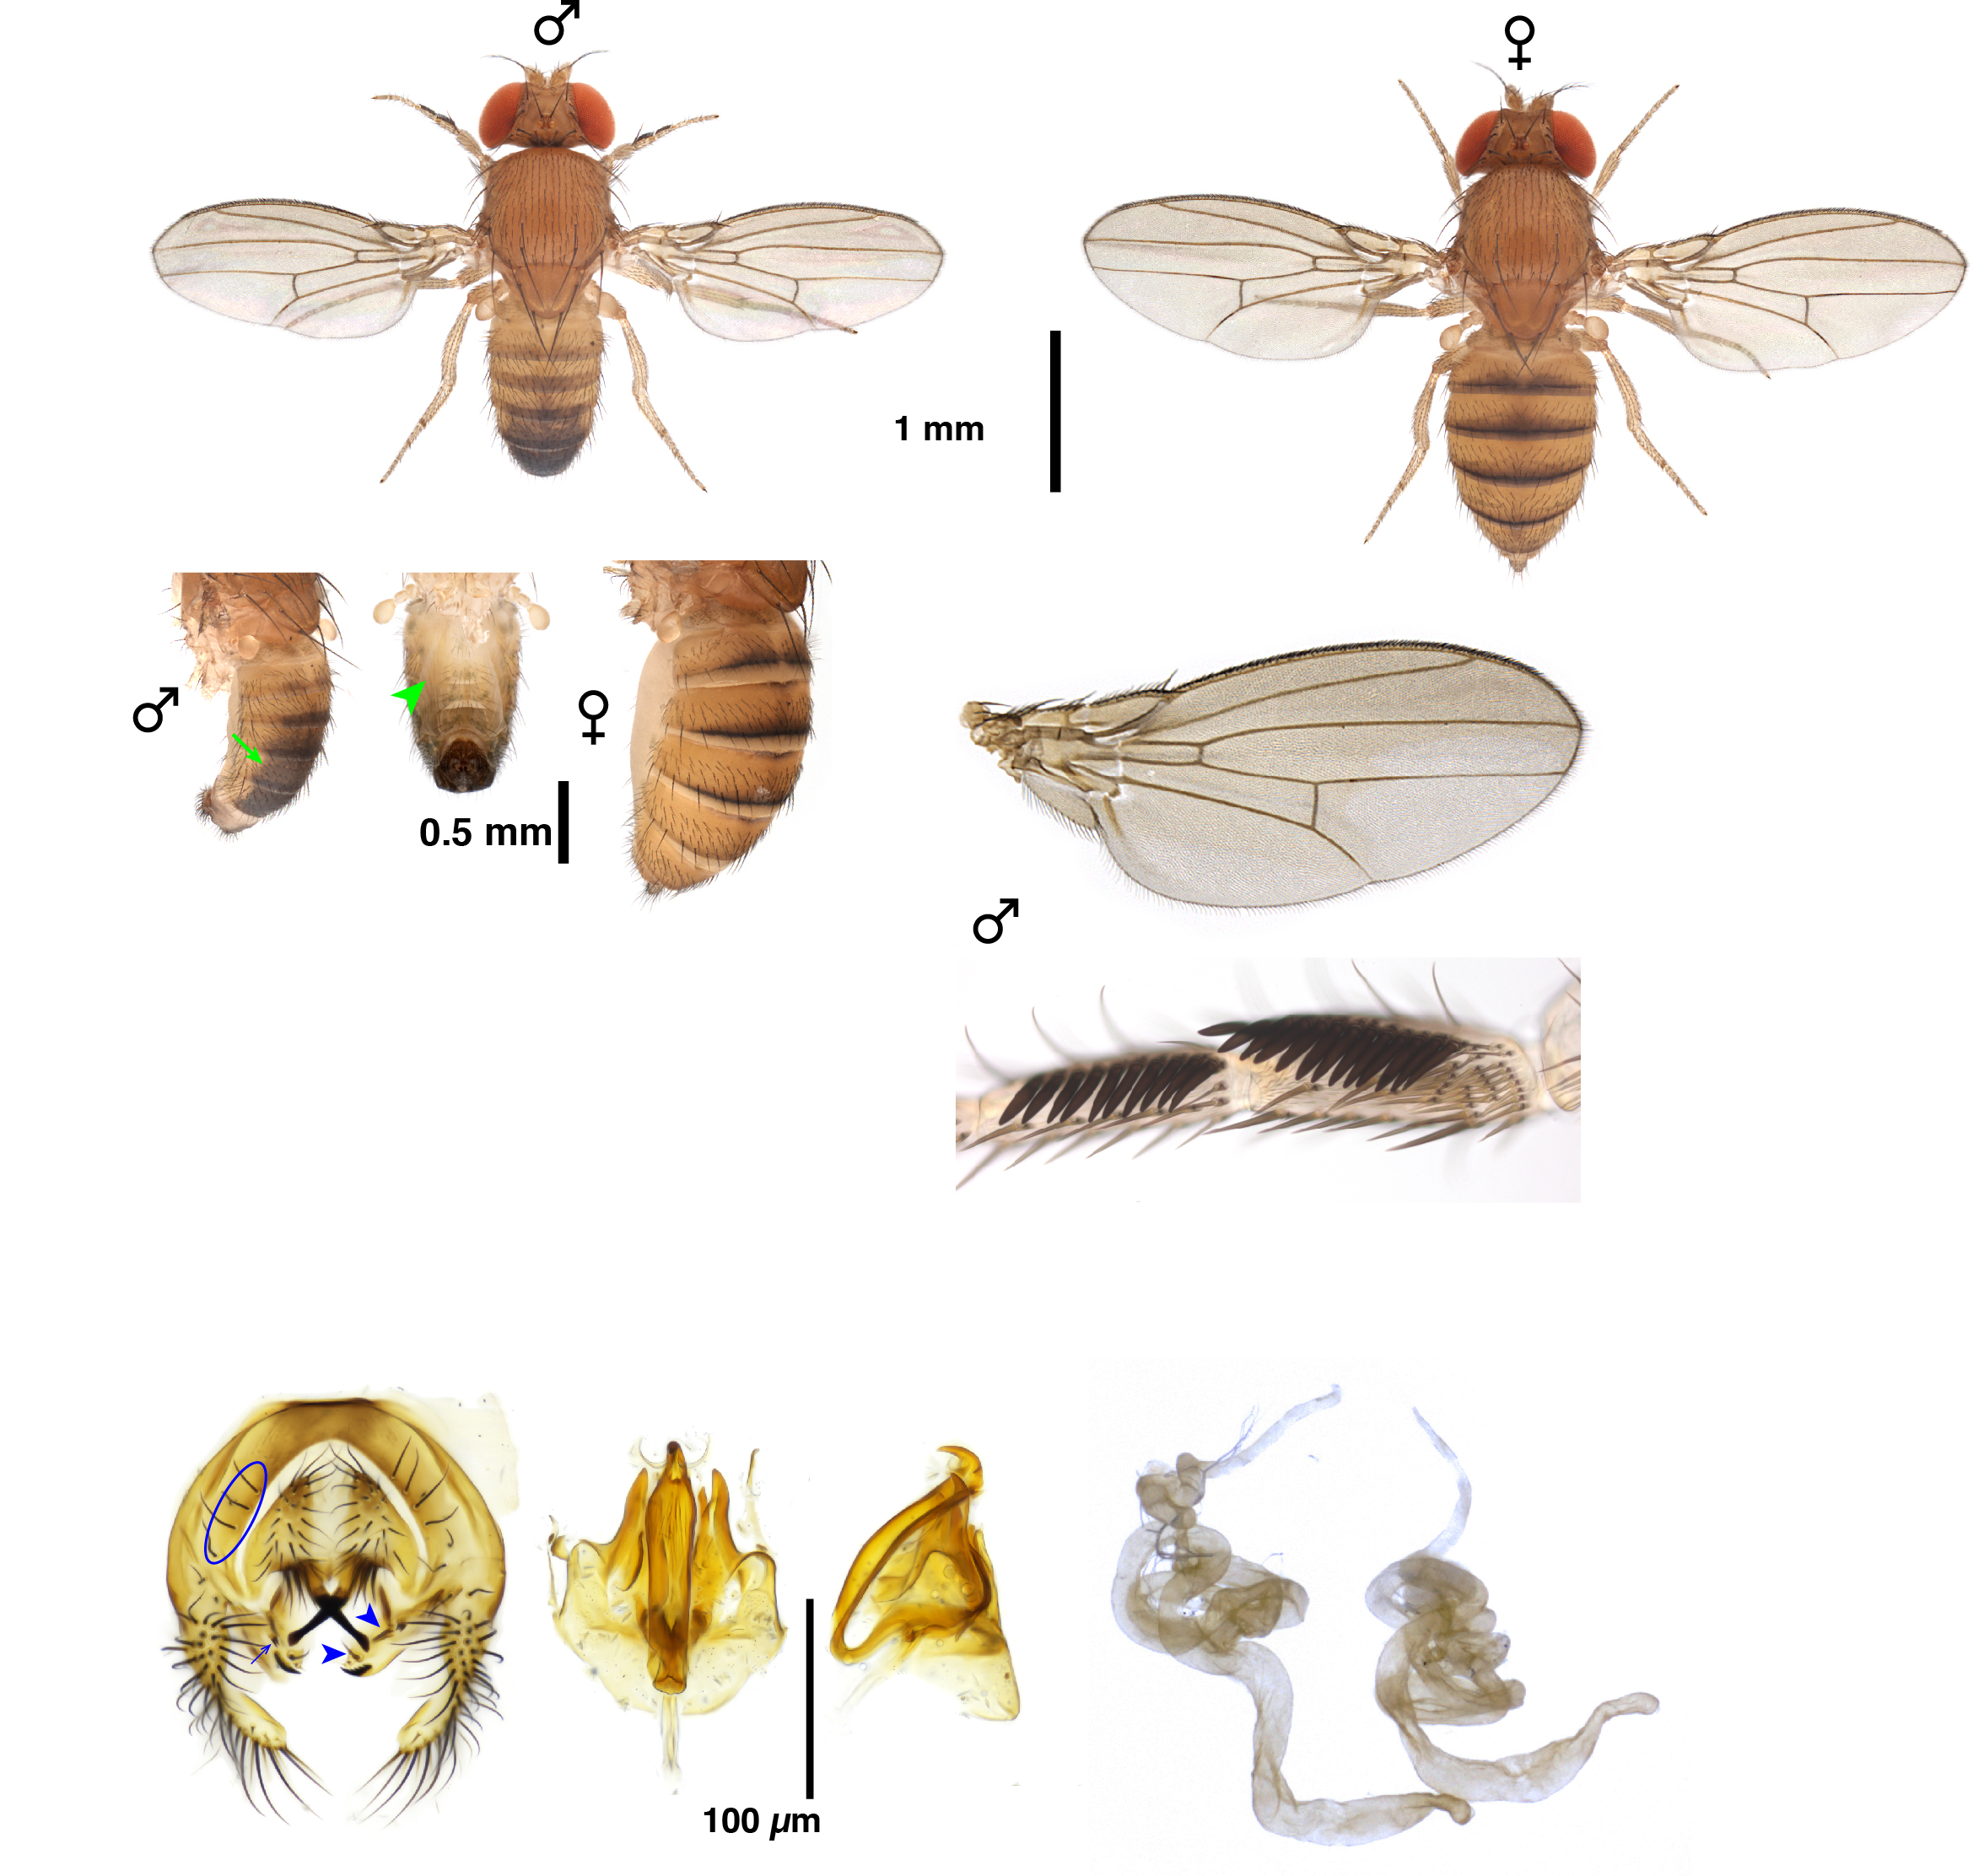 Drosophila rhopaloa